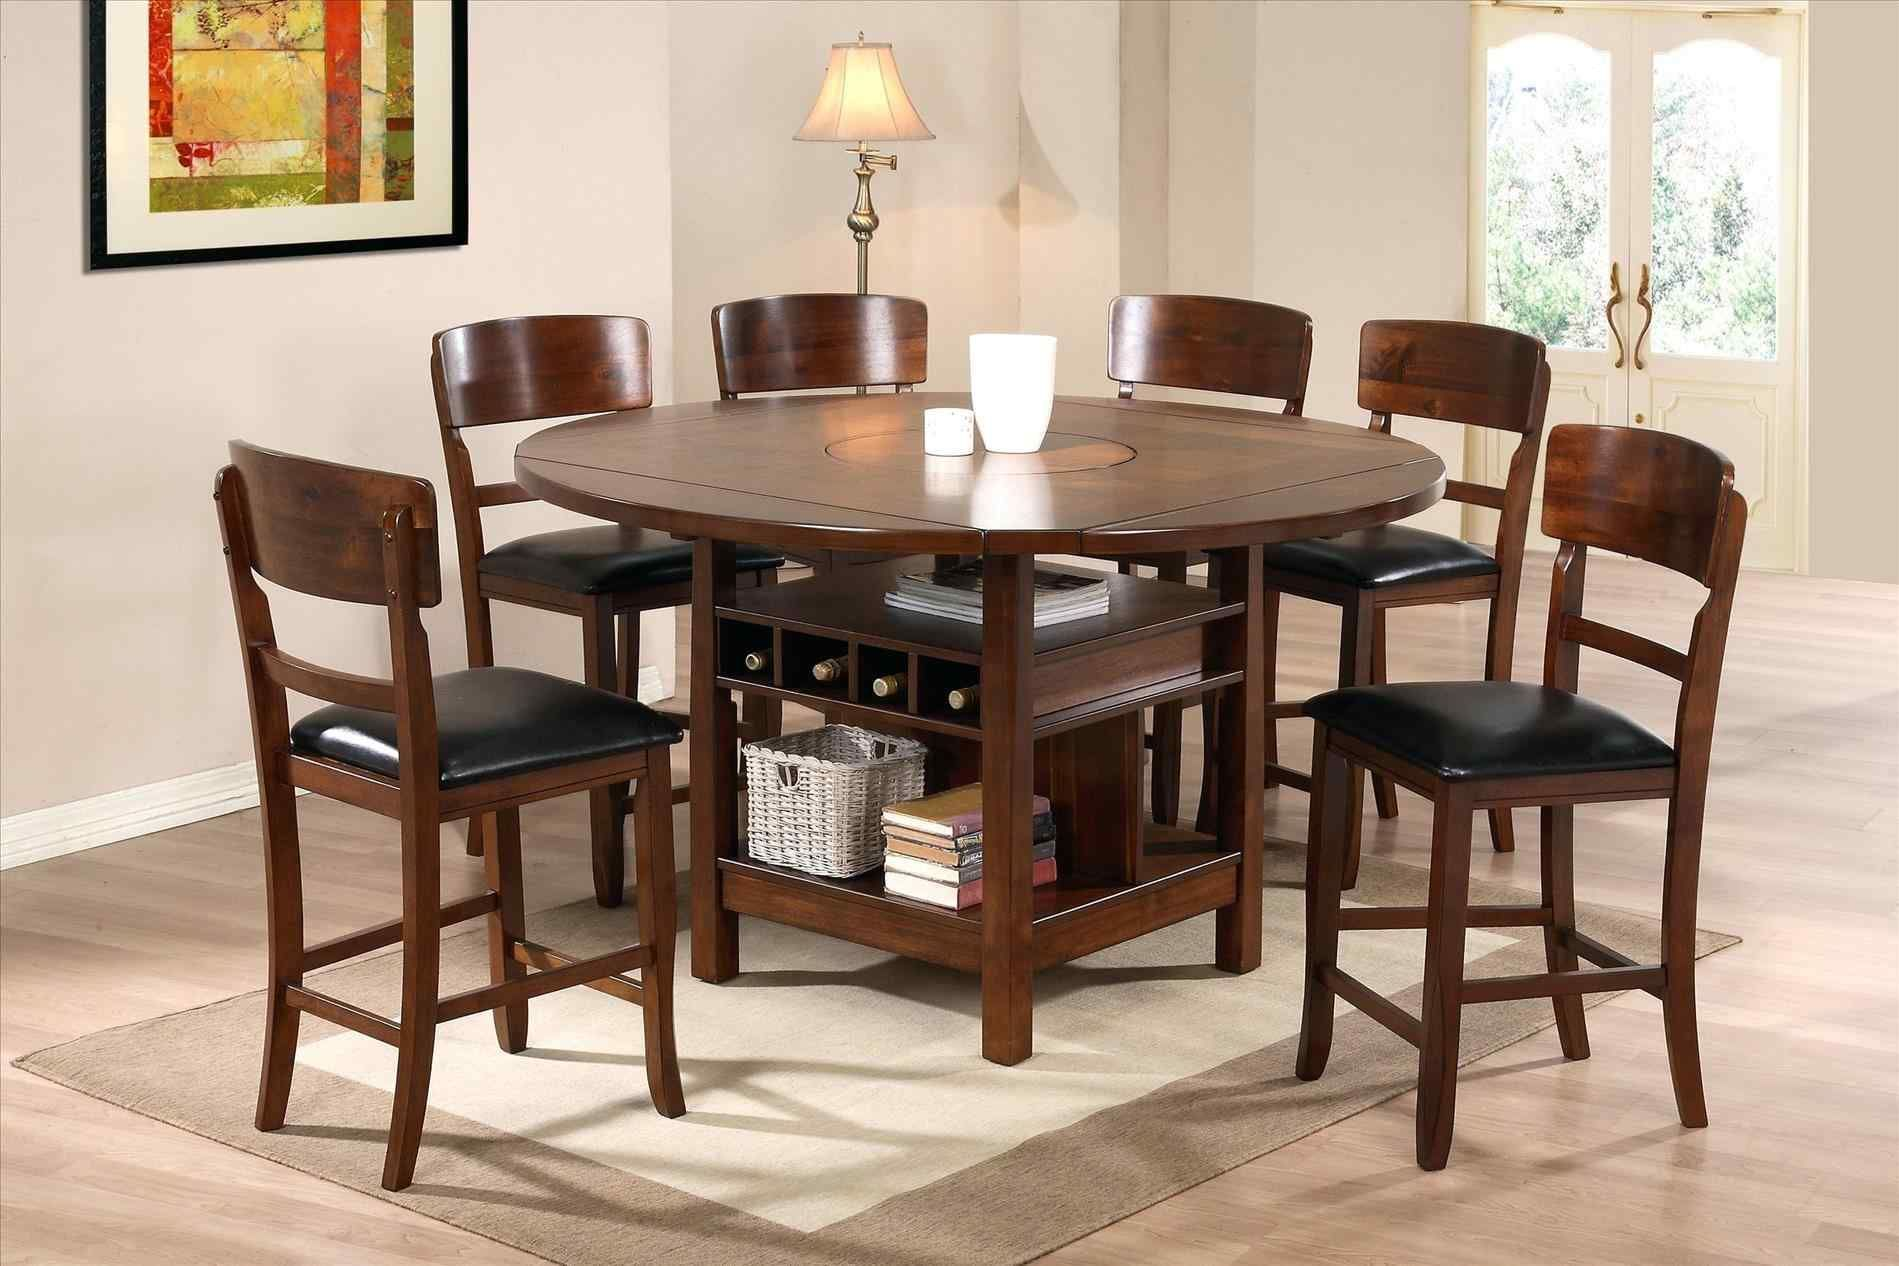 11 Wonderful White Dining Room Table Seats 8 Round Dining Room